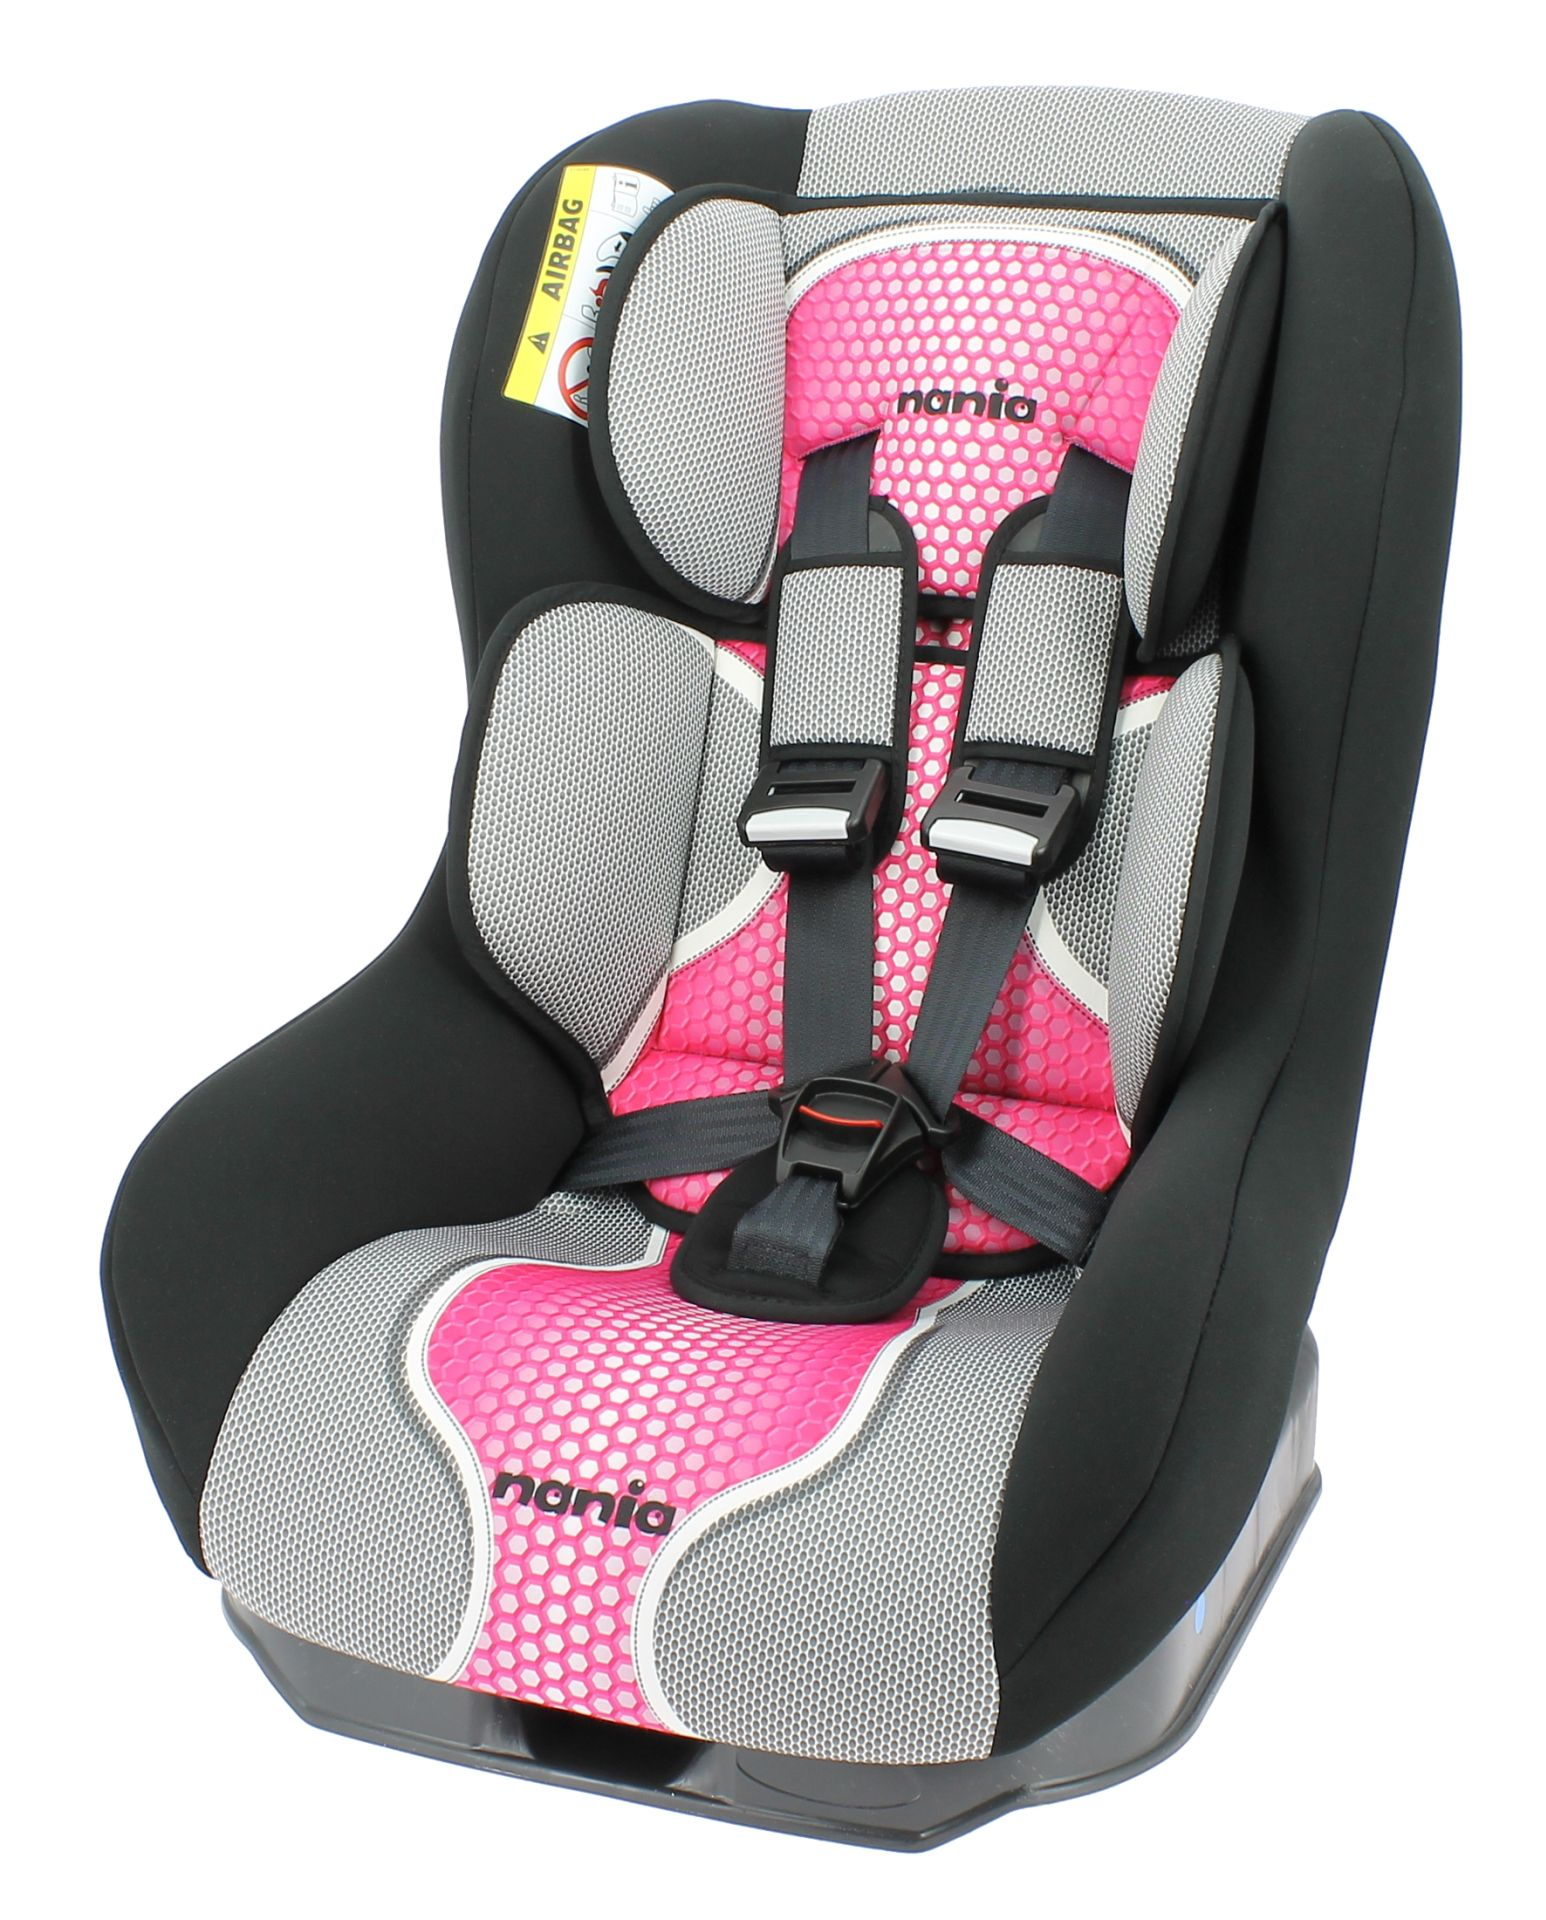 Si ge enfant safety plus nt par osann 2016 pop pink for Siege enfant